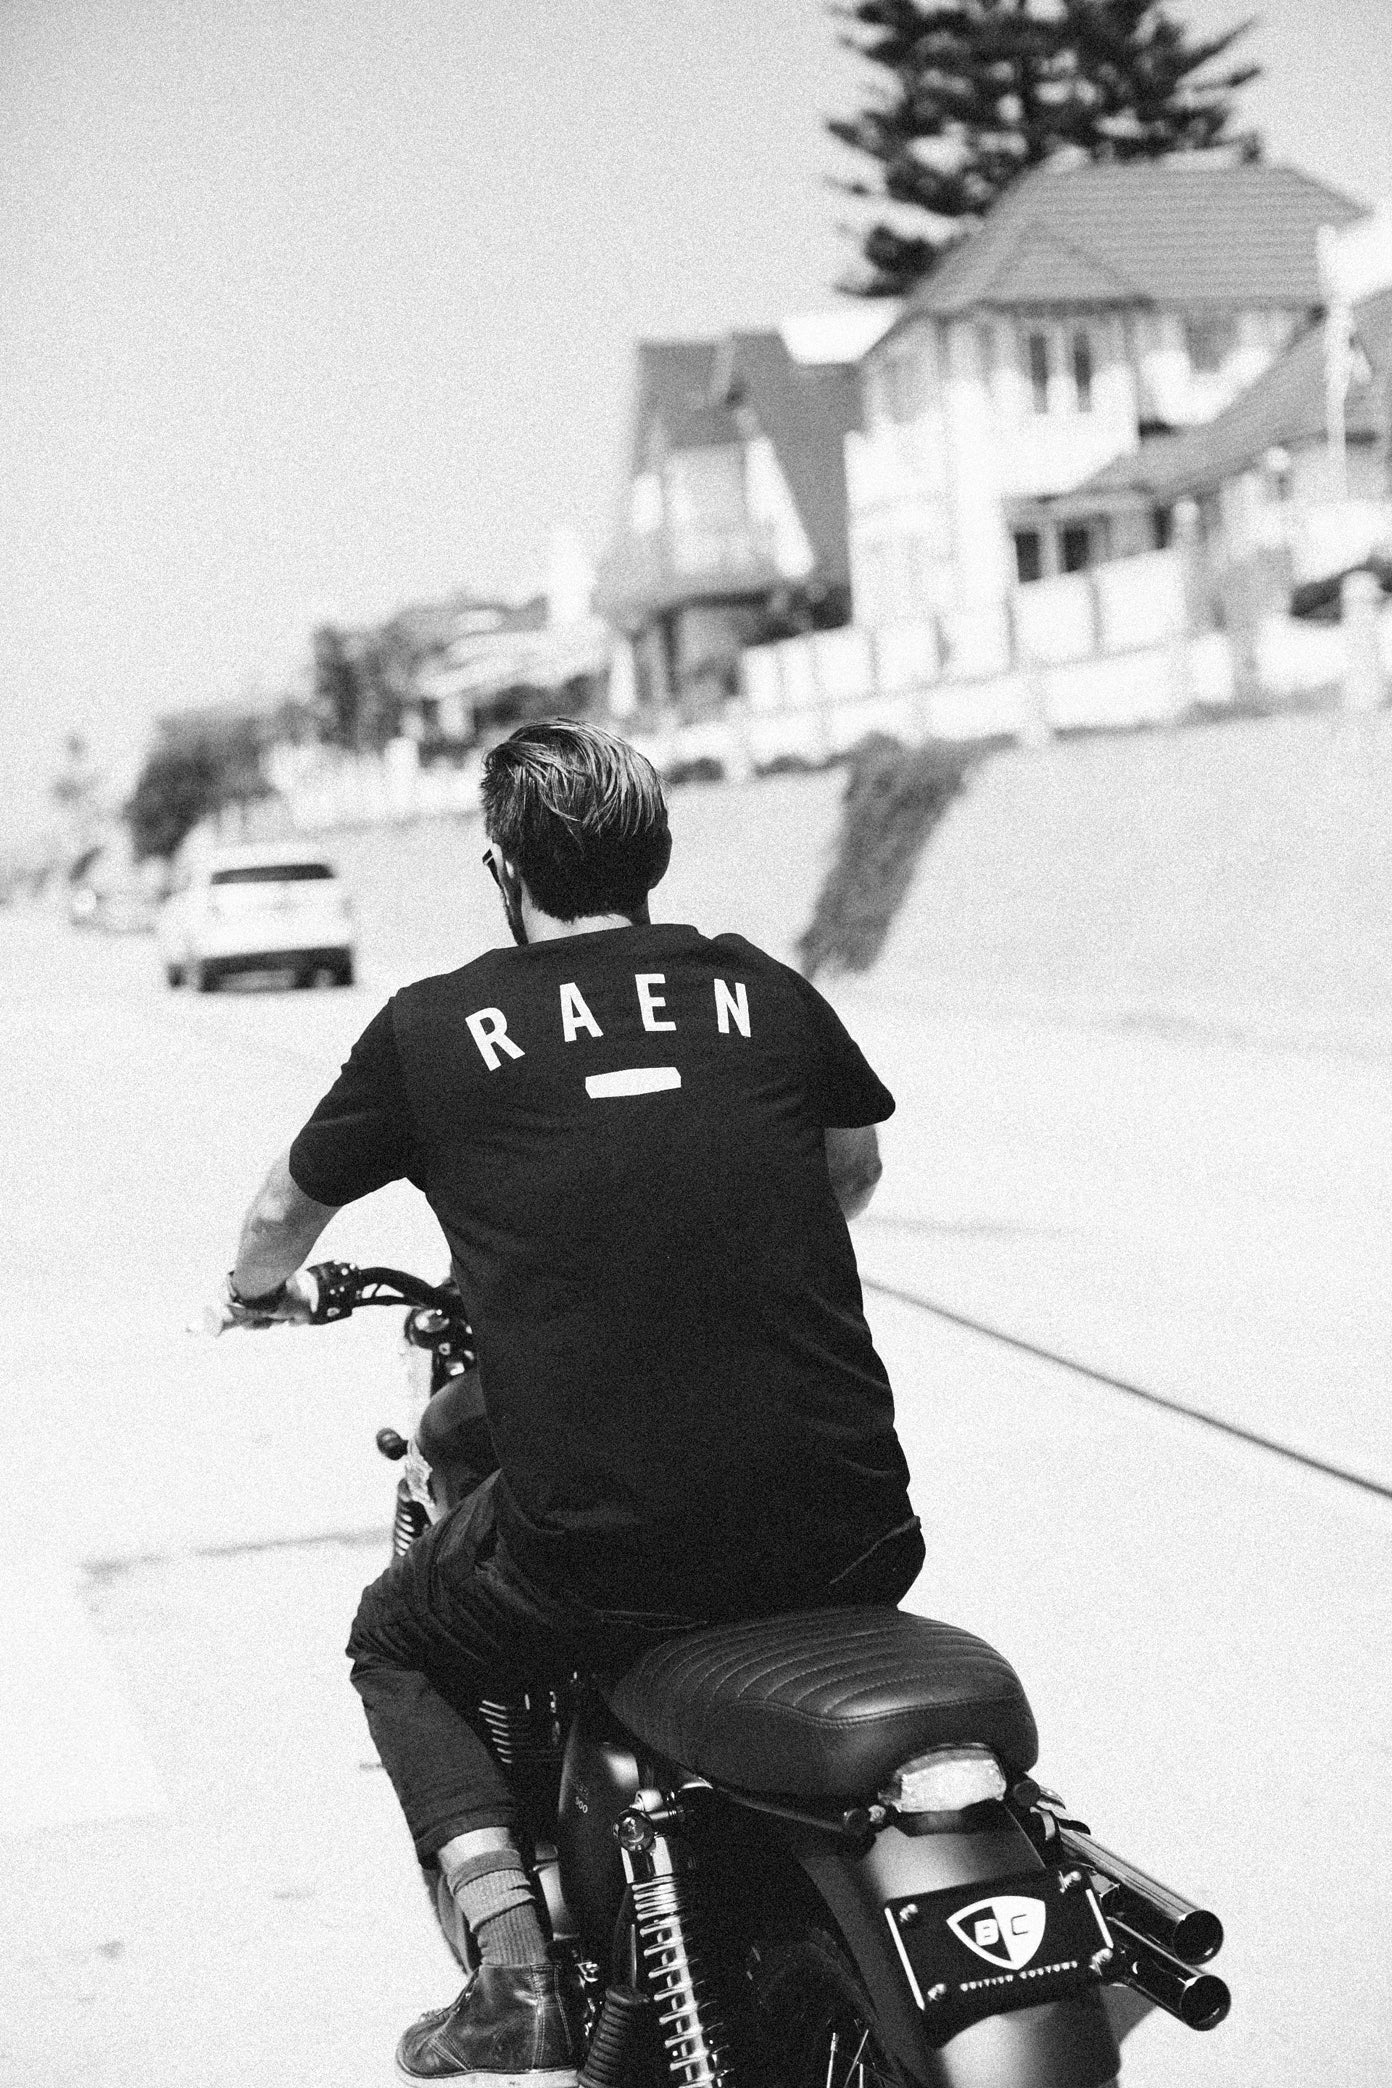 Introducing RAEN TEES